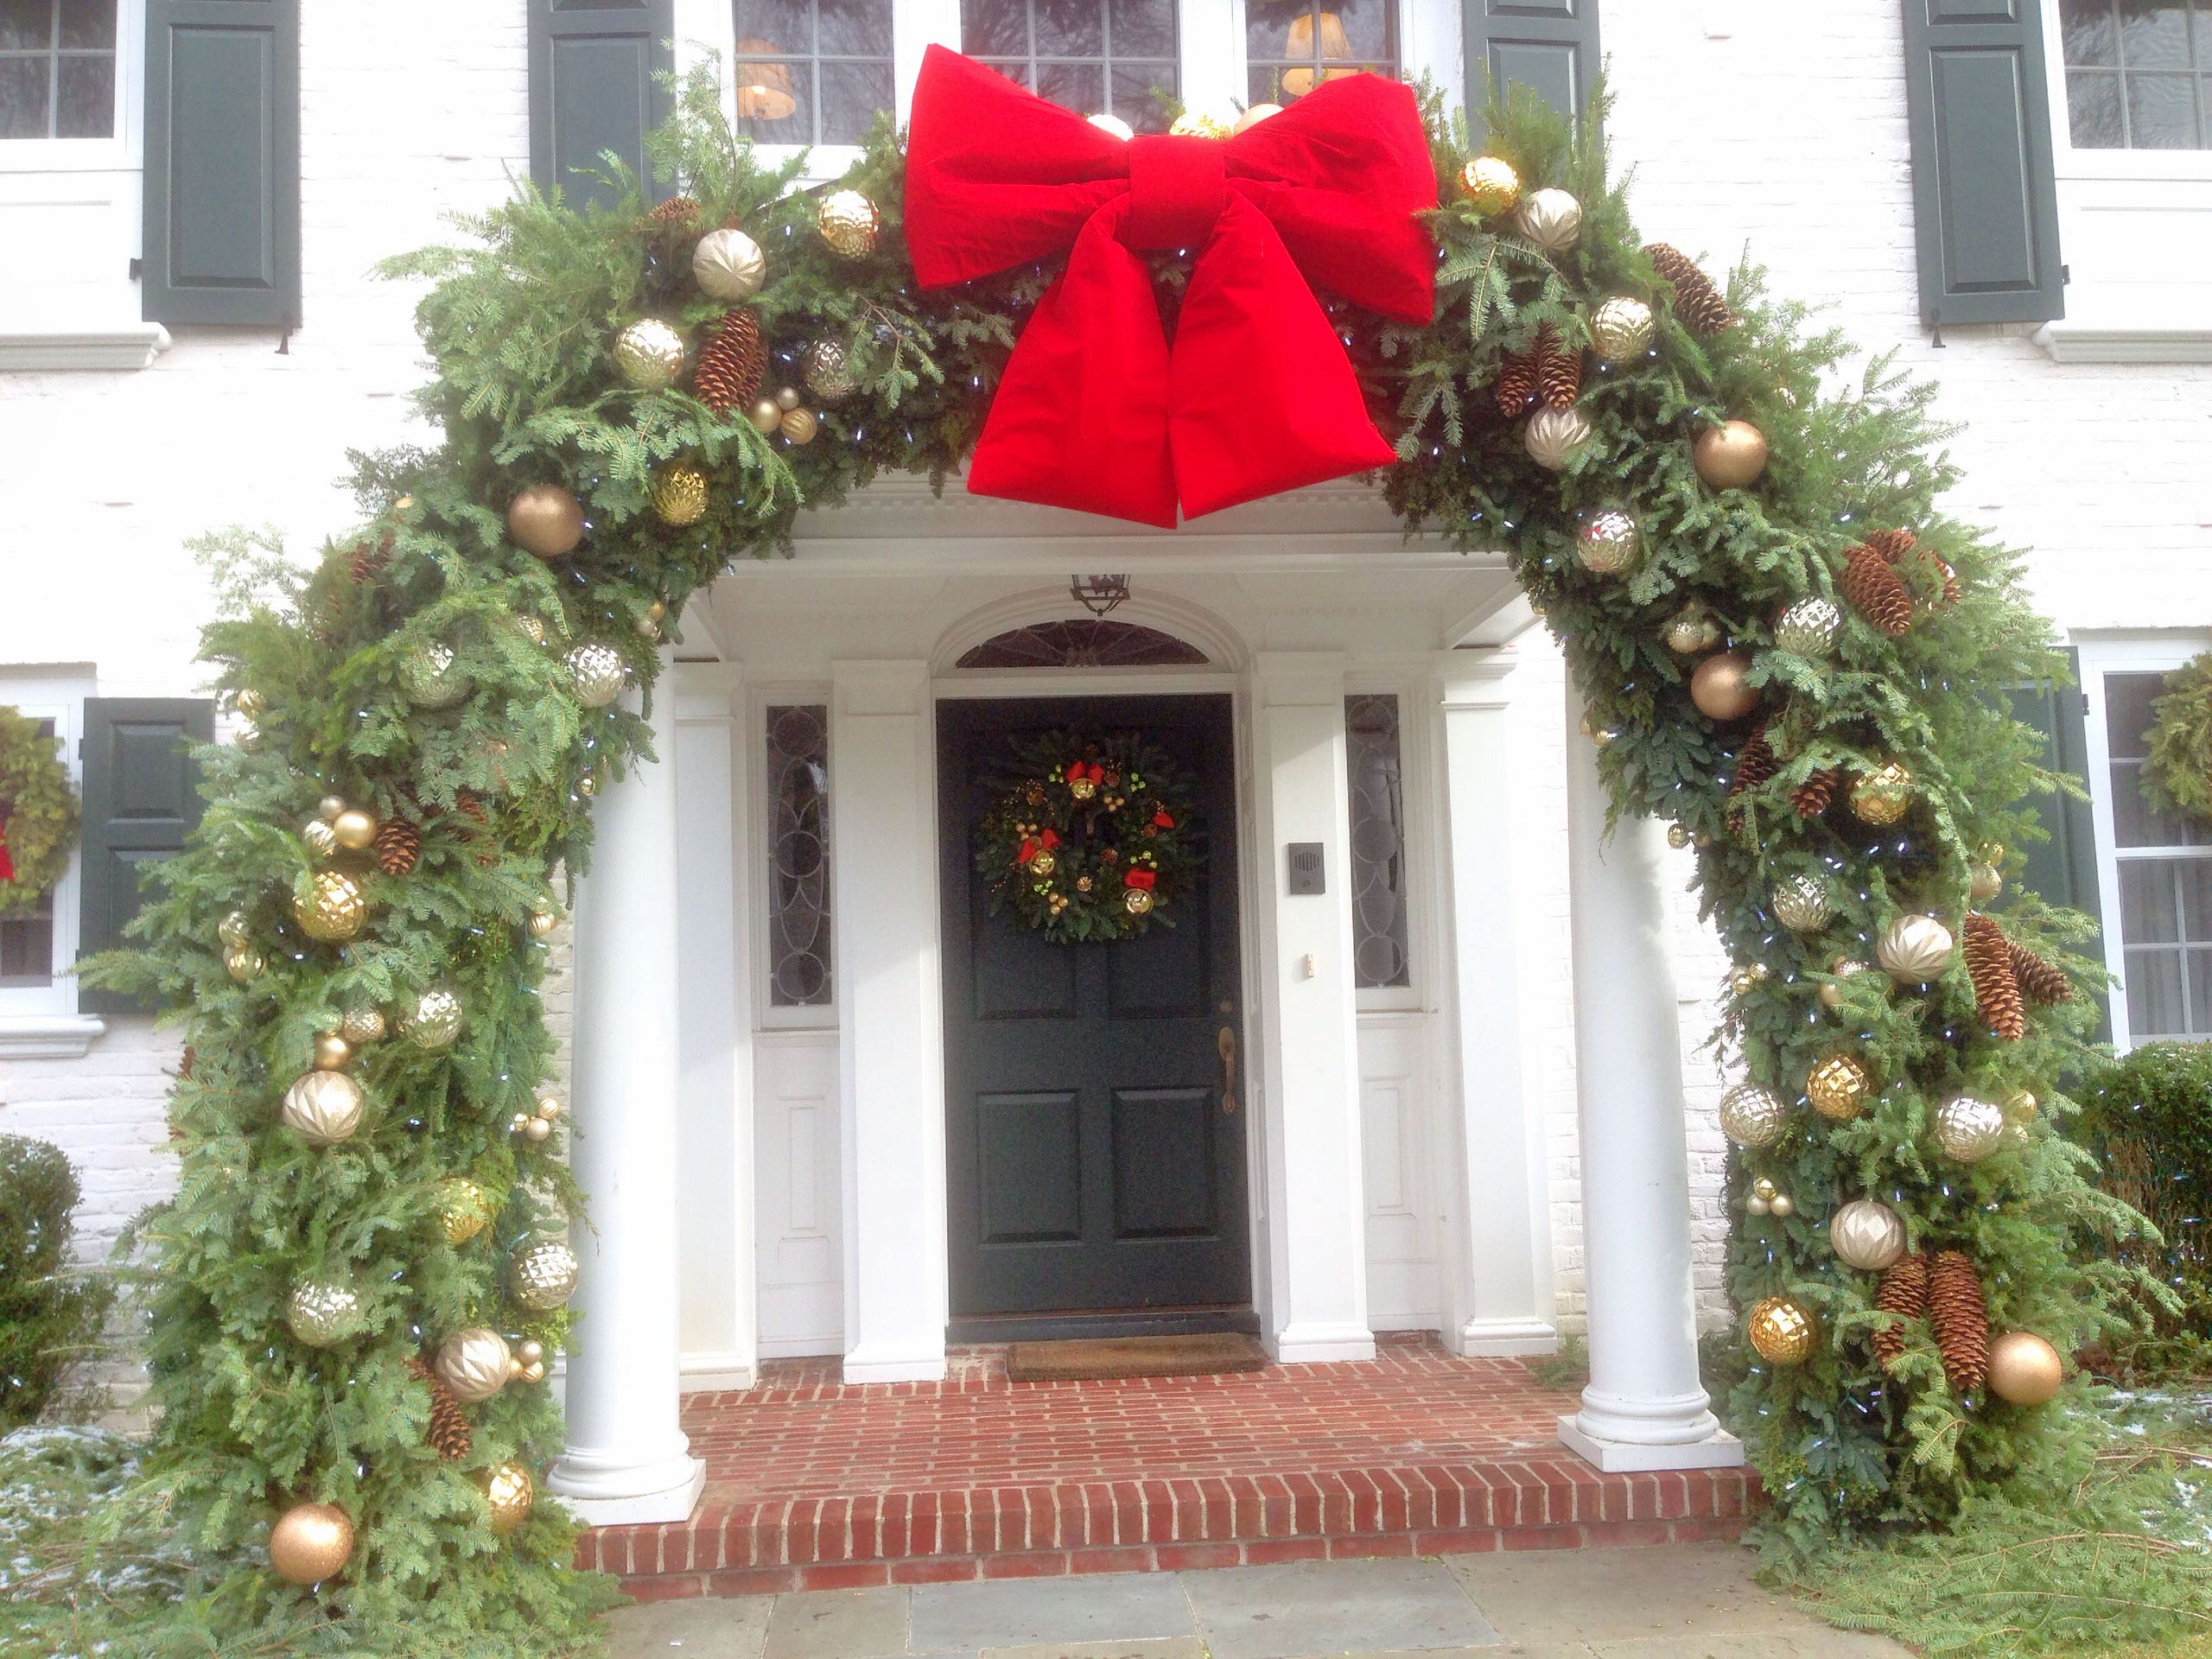 Christmas Decorations, Wreaths, Trees and Outdoor Lights